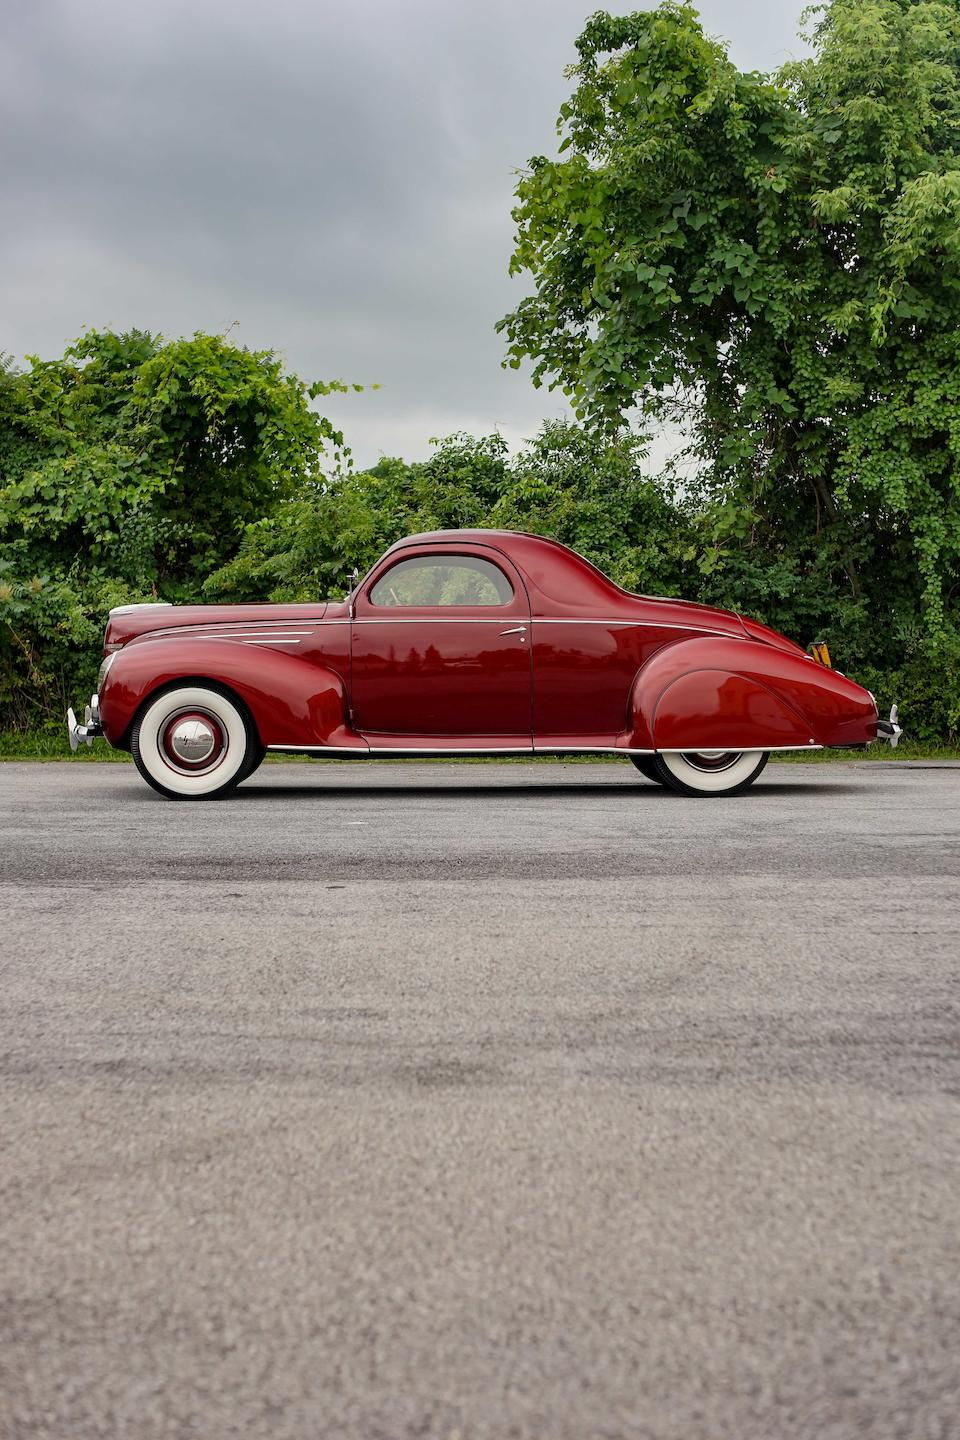 <B>1939 LINCOLN ZEPHYR COUPE</B>